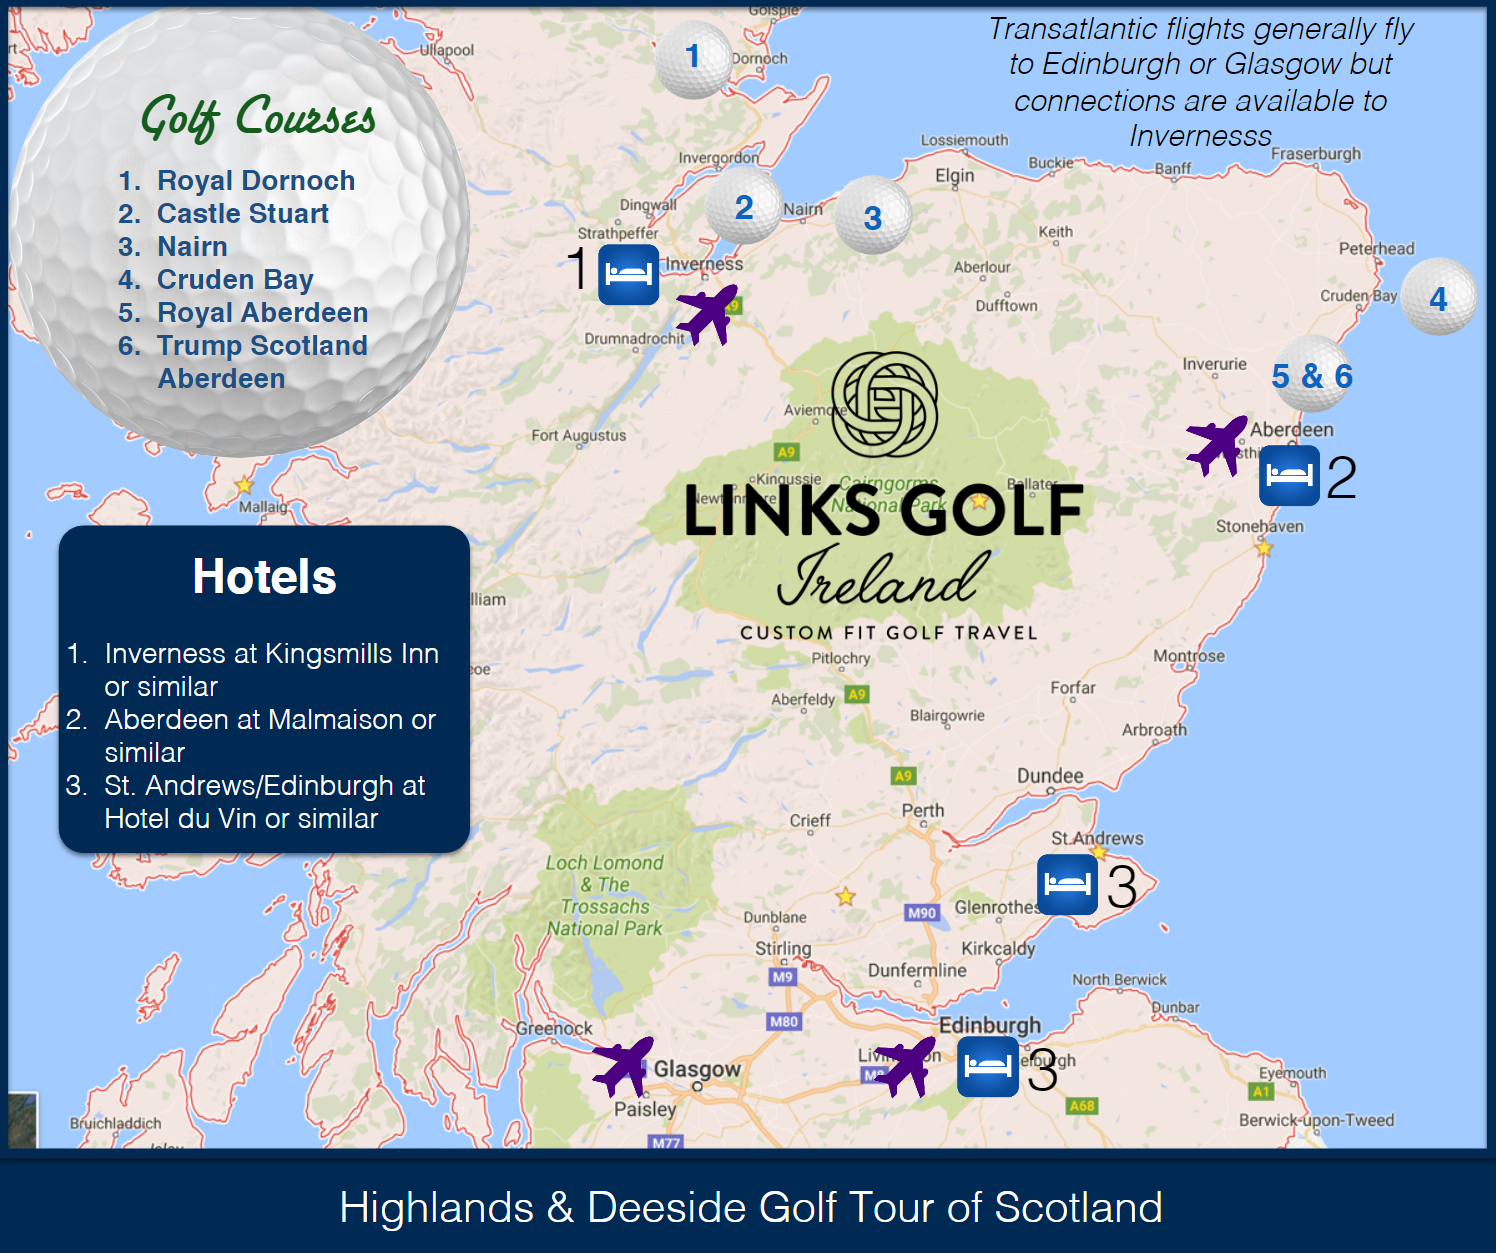 Nairn Scotland Map.The Best Golf Courses To Play In The Highlands Including Royal Dornoch